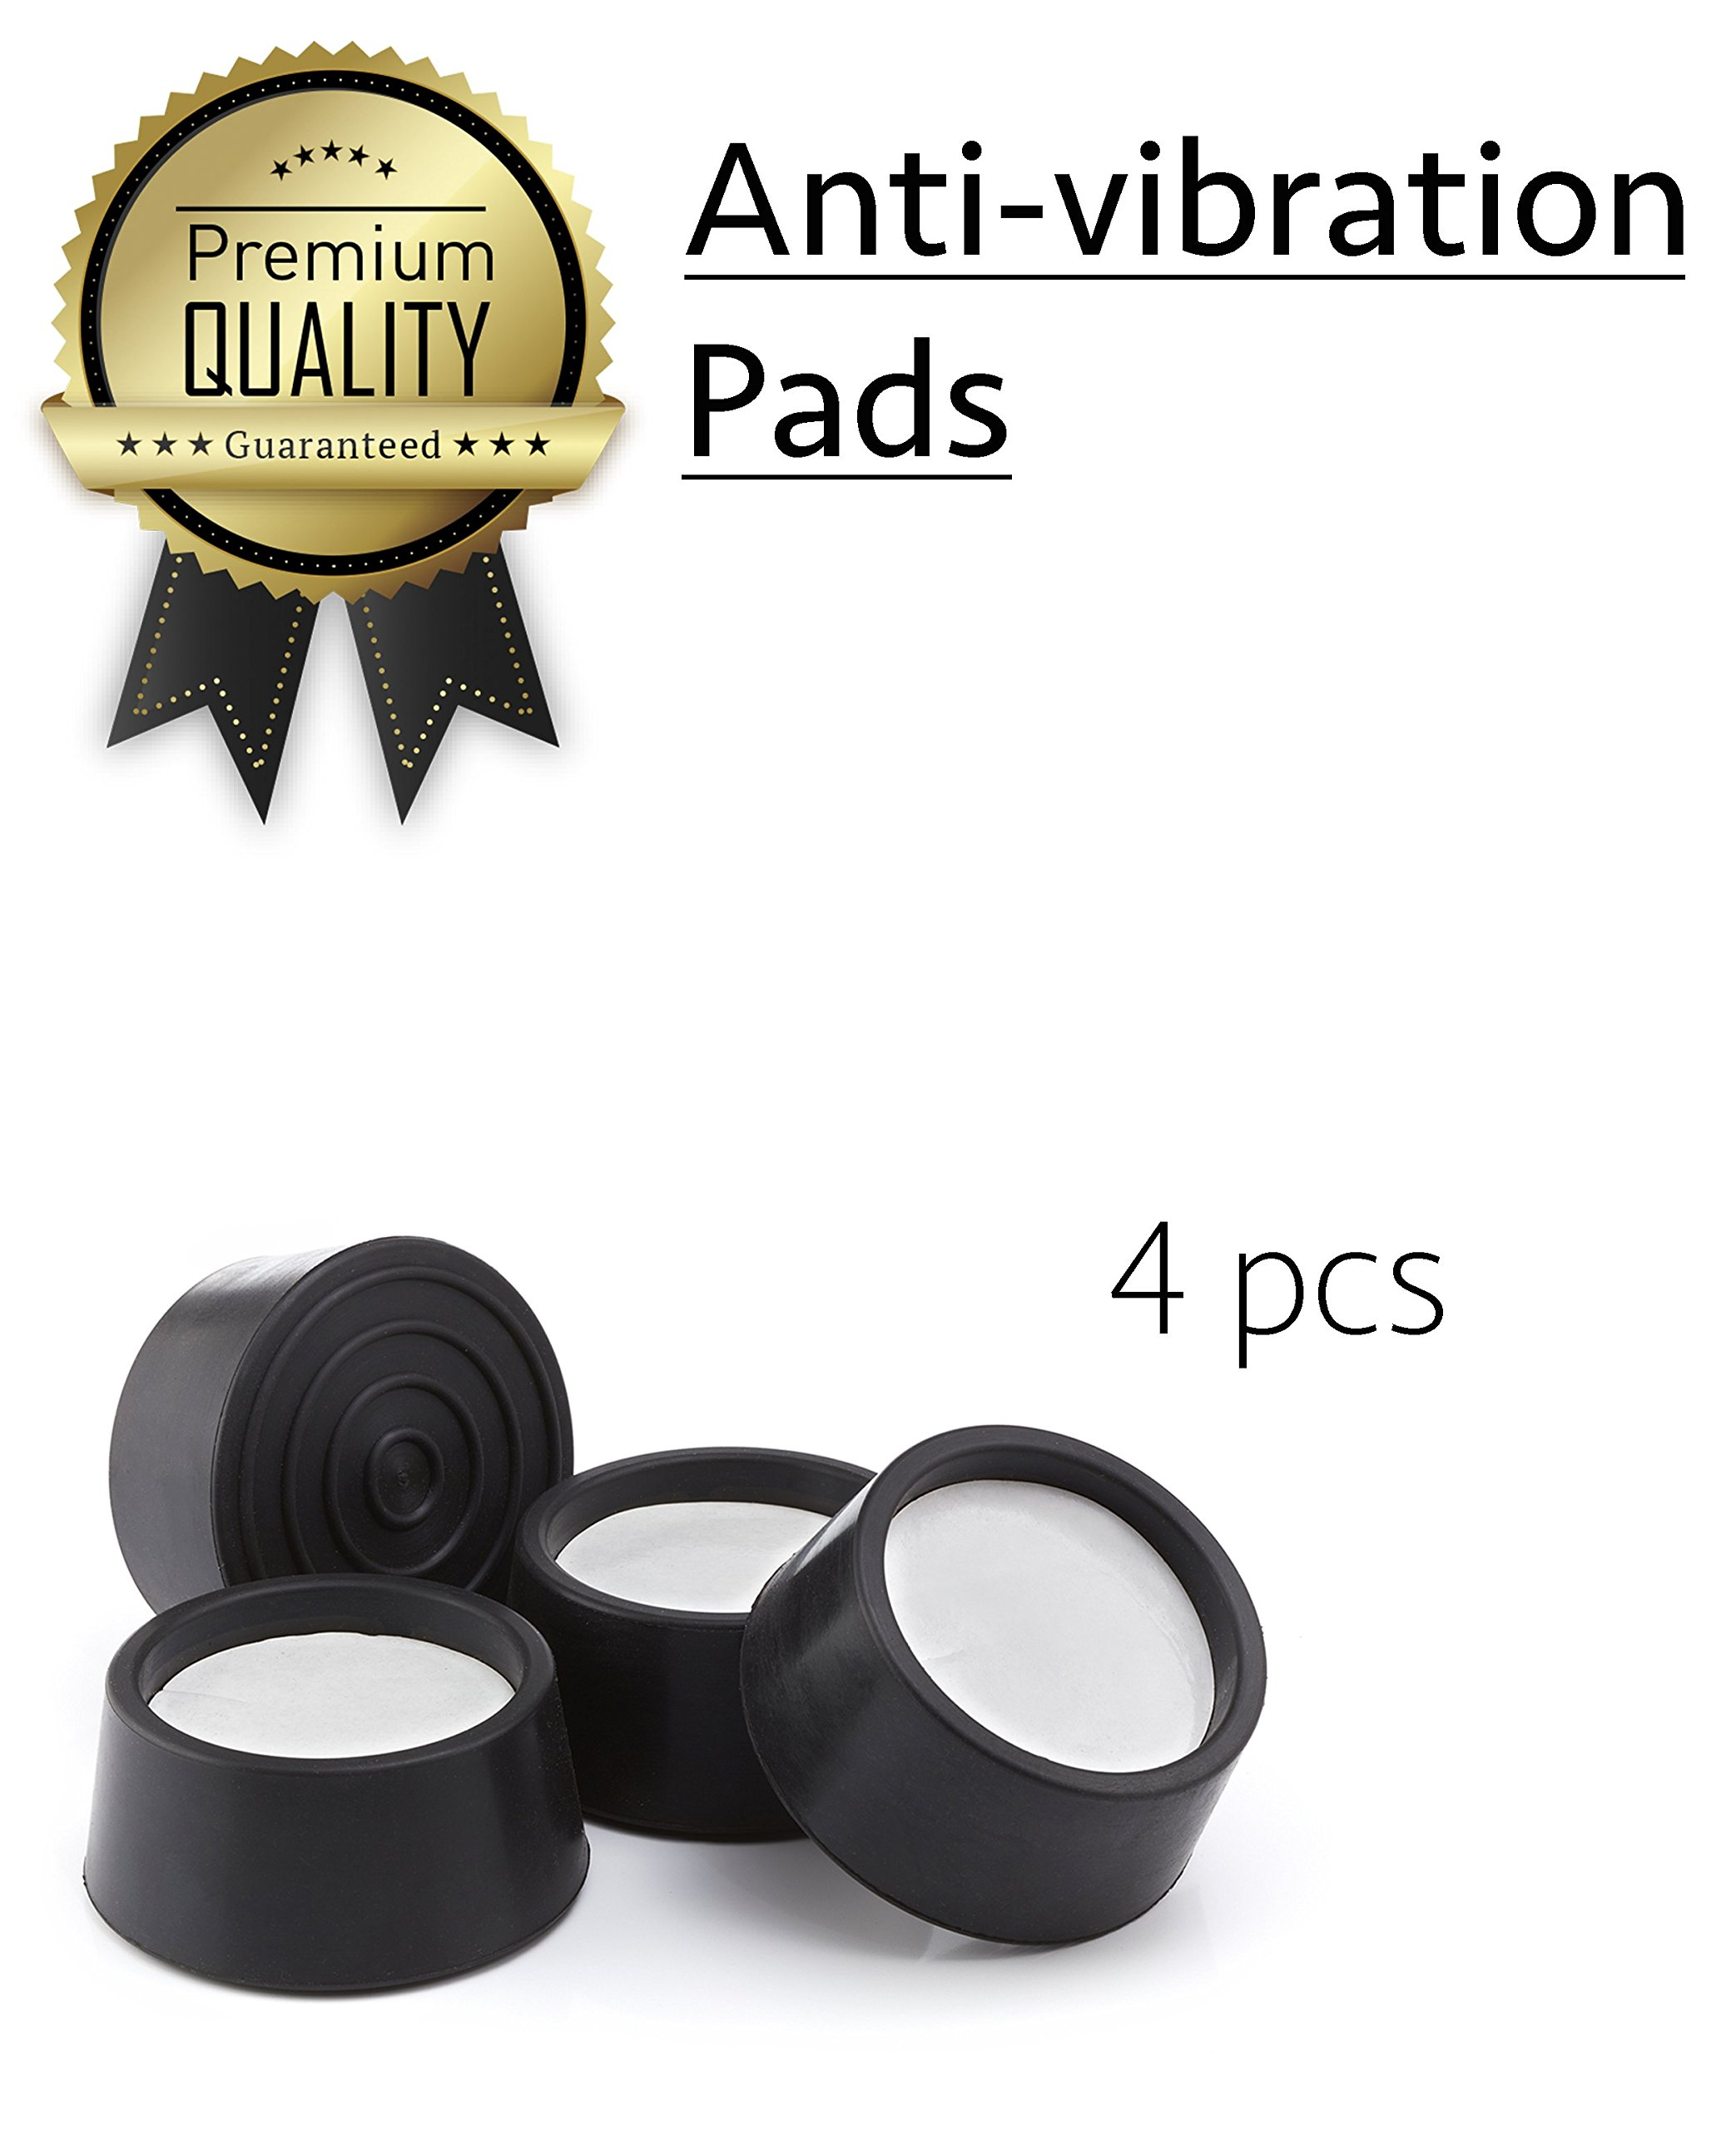 Anti-Vibration Pads For Washing Machines and Clothes Dryers - Anti-Walk Washer Vibration Pads - Noise Reducing, Shock Absorbing, Vibration Isolating Pads - No Shake Pads by No Shake Pads (Image #1)